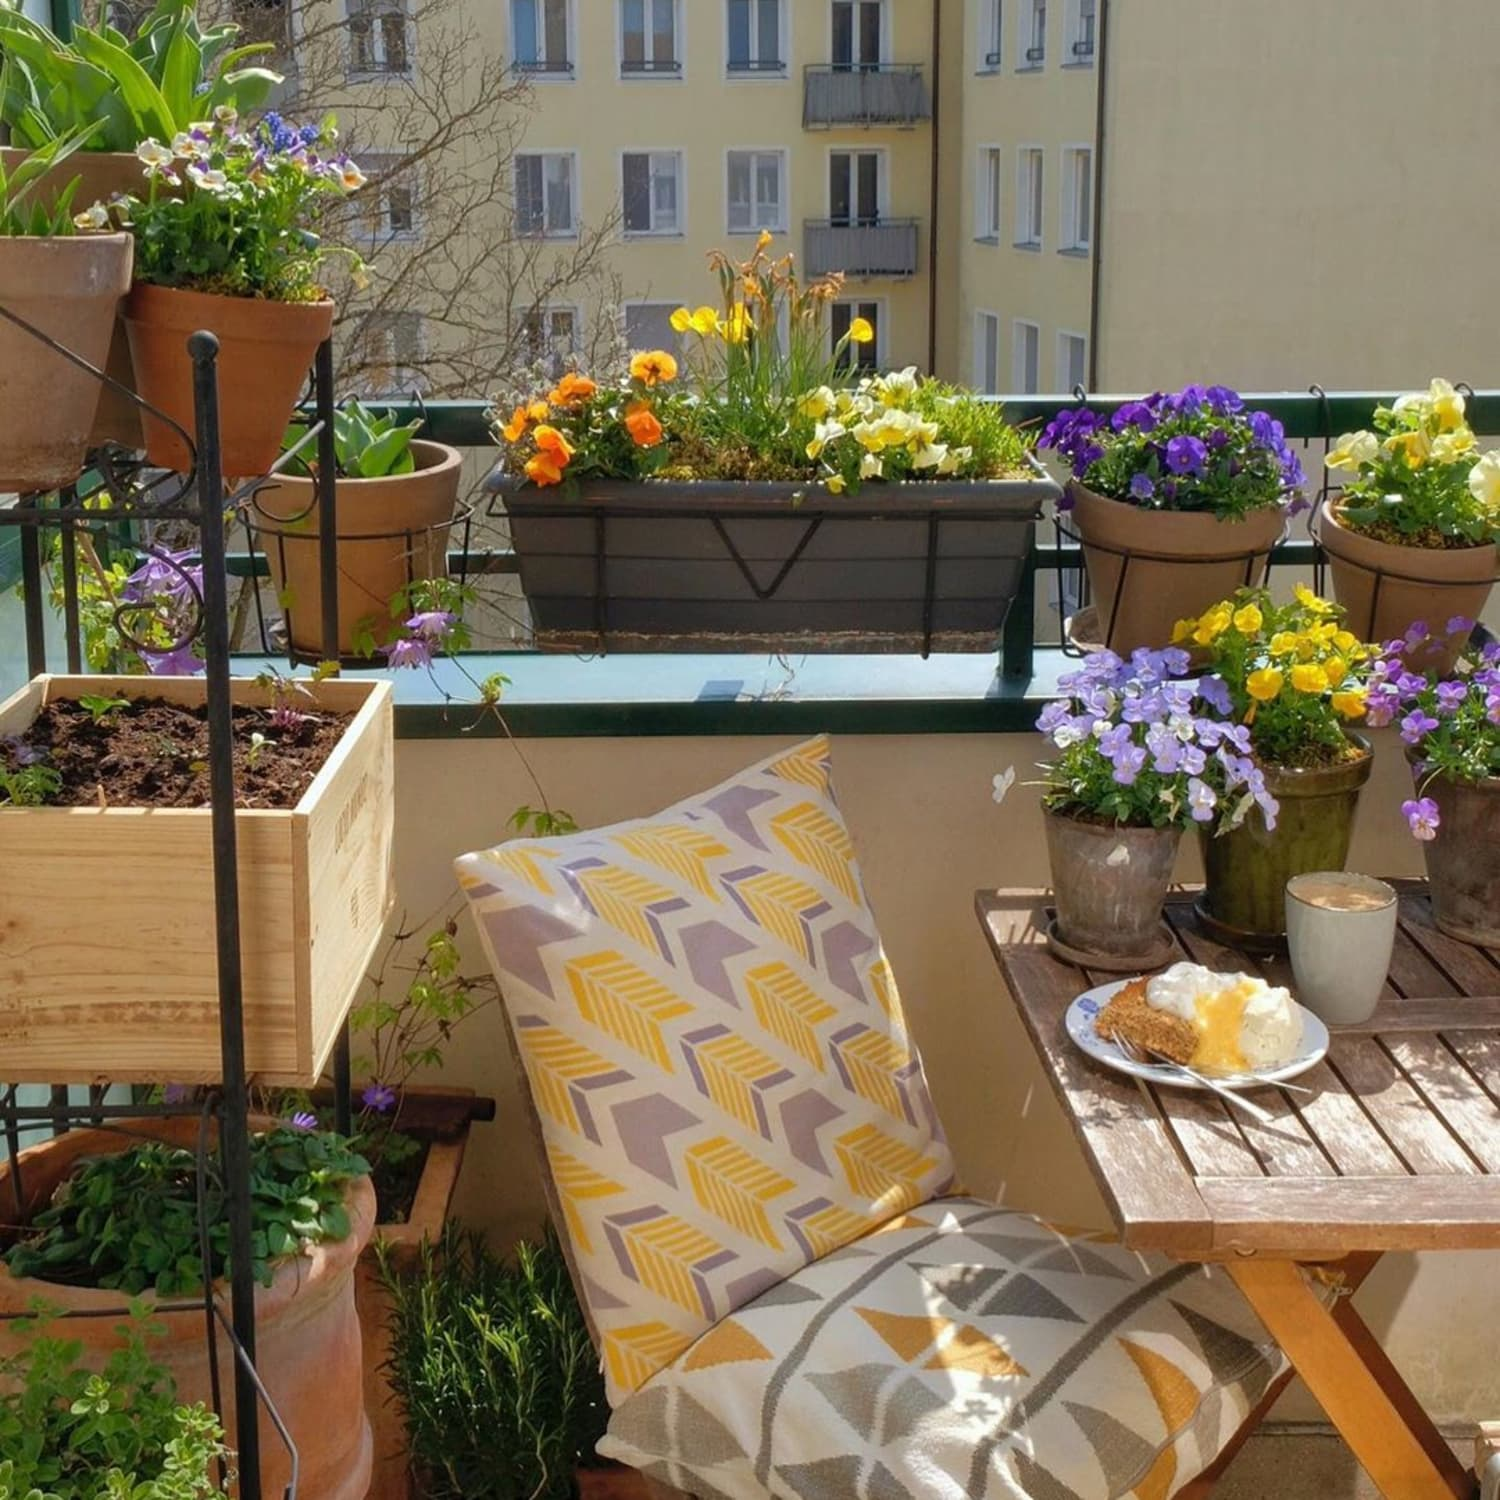 10 Balcony Garden Ideas How To Grow Plants On A Small Balcony Apartment Therapy